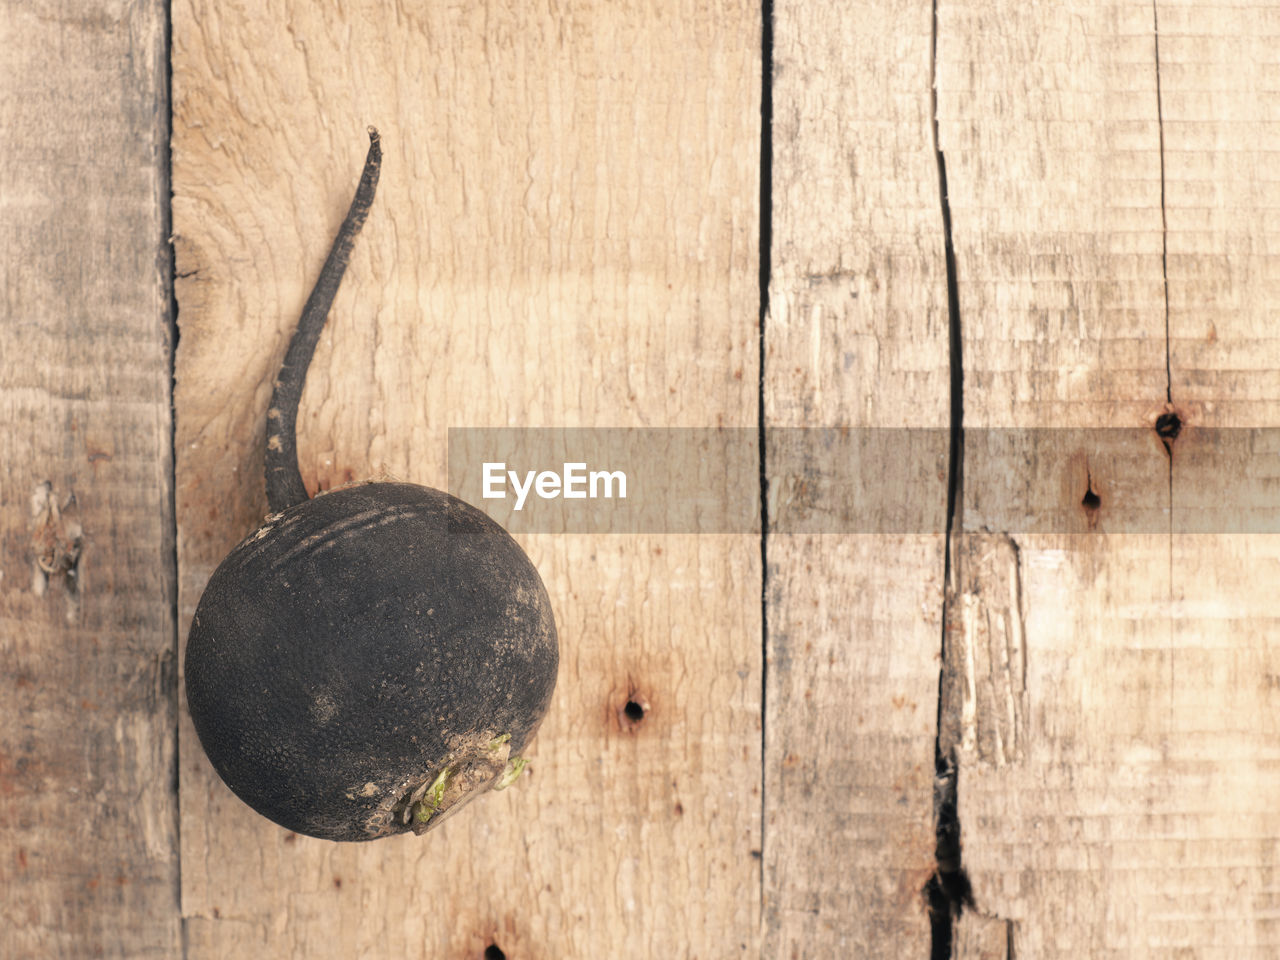 wood - material, no people, close-up, indoors, textured, old, directly above, table, brown, food and drink, backgrounds, wood, wall - building feature, still life, circle, single object, fruit, geometric shape, two objects, wood grain, textured effect